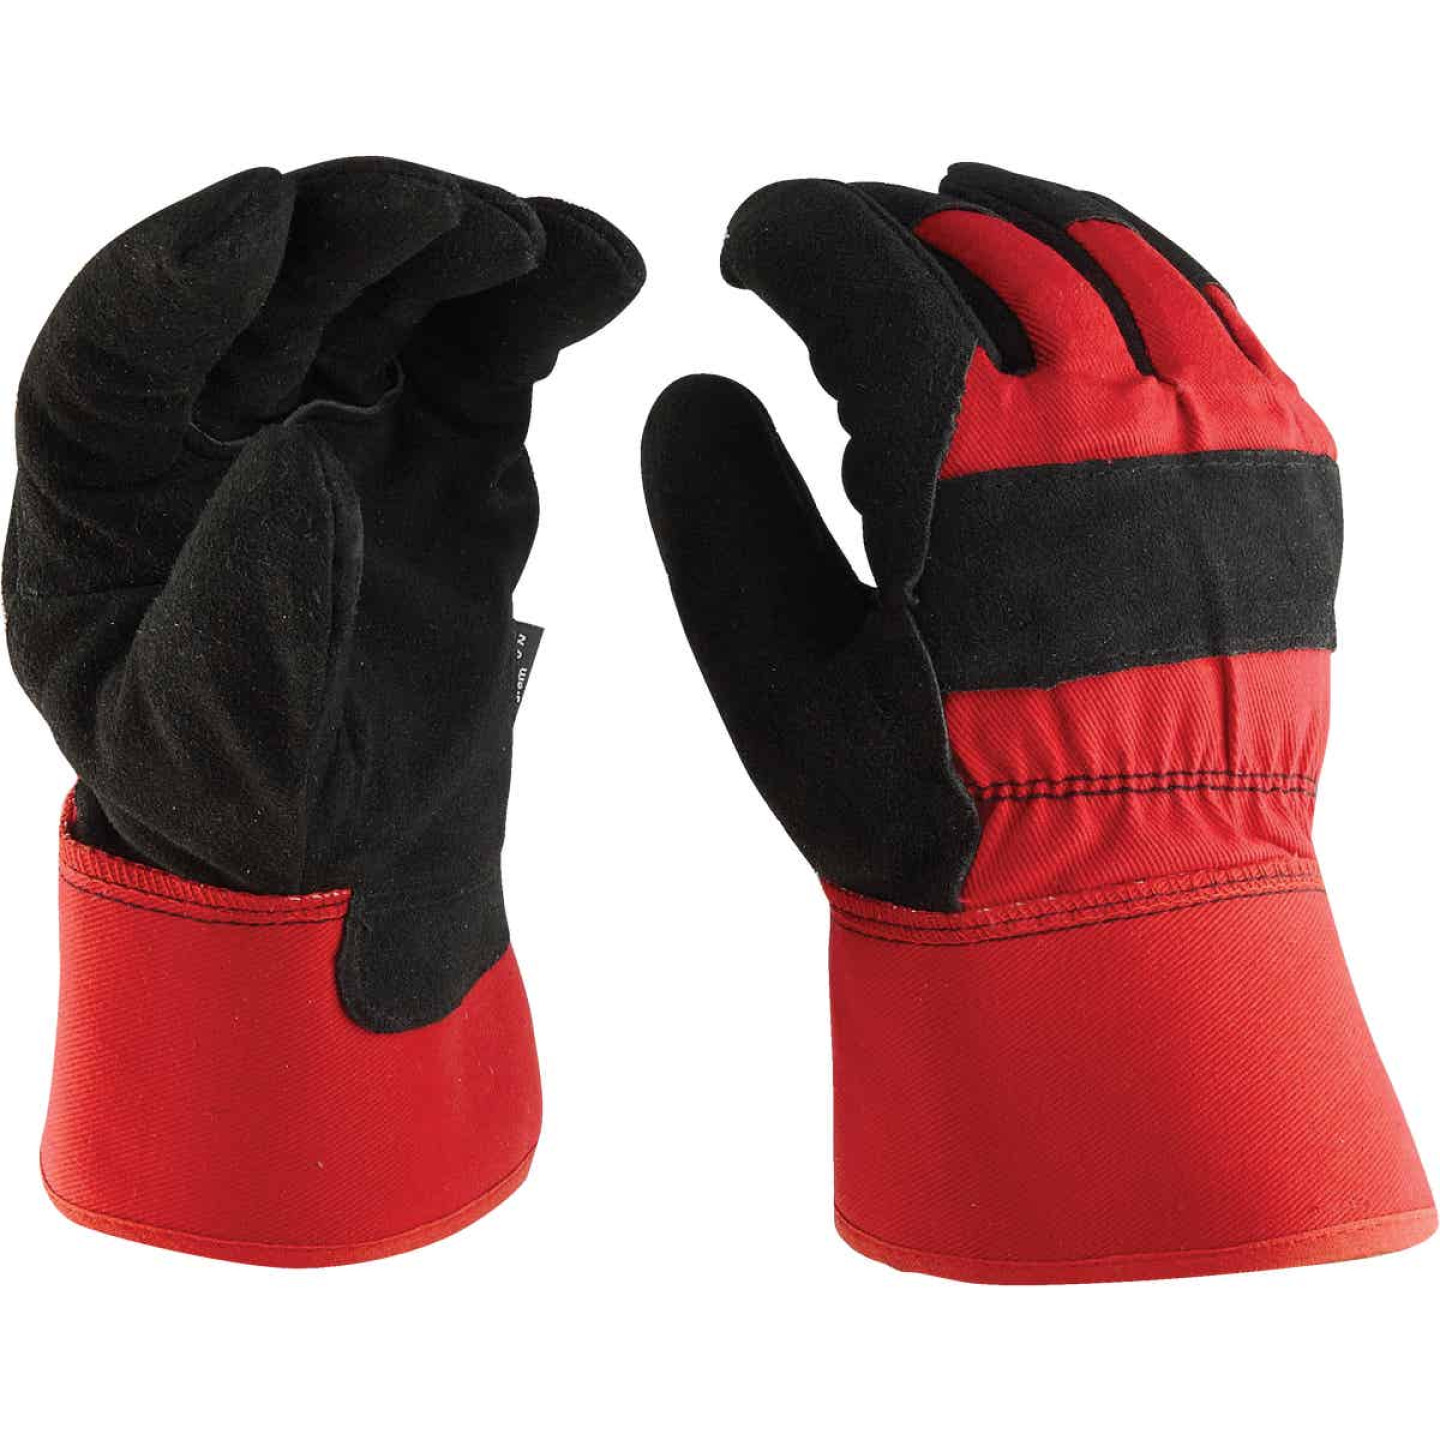 Do it Best Men's XL Leather Winter Work Glove Image 6